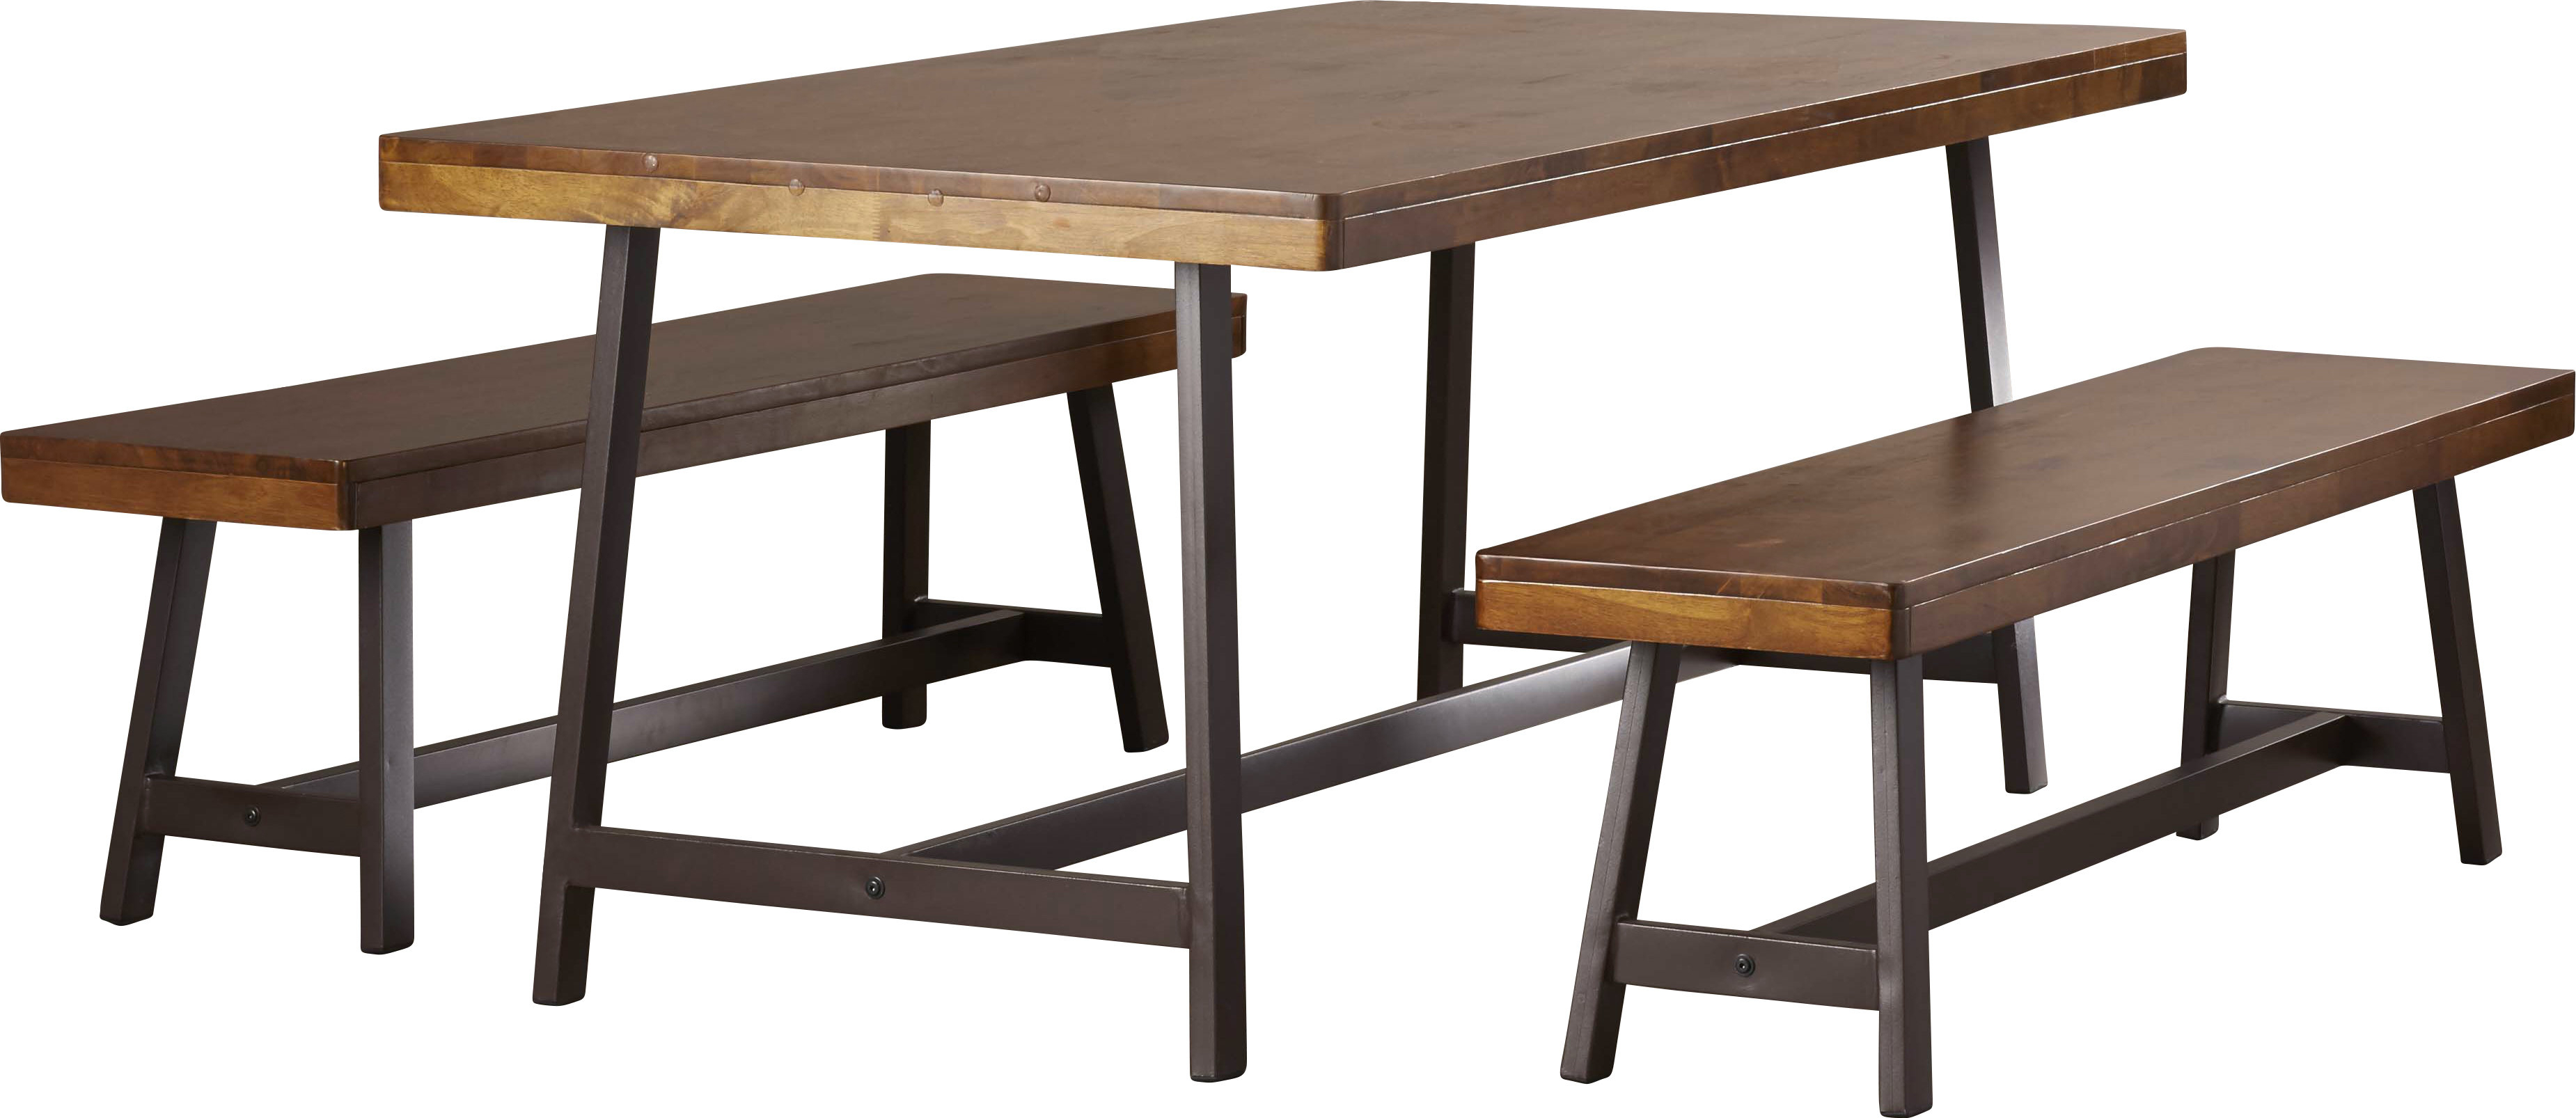 Loon Peak Huntington 3 Piece Dining Set Pertaining To Most Recently Released Frida 3 Piece Dining Table Sets (View 5 of 20)